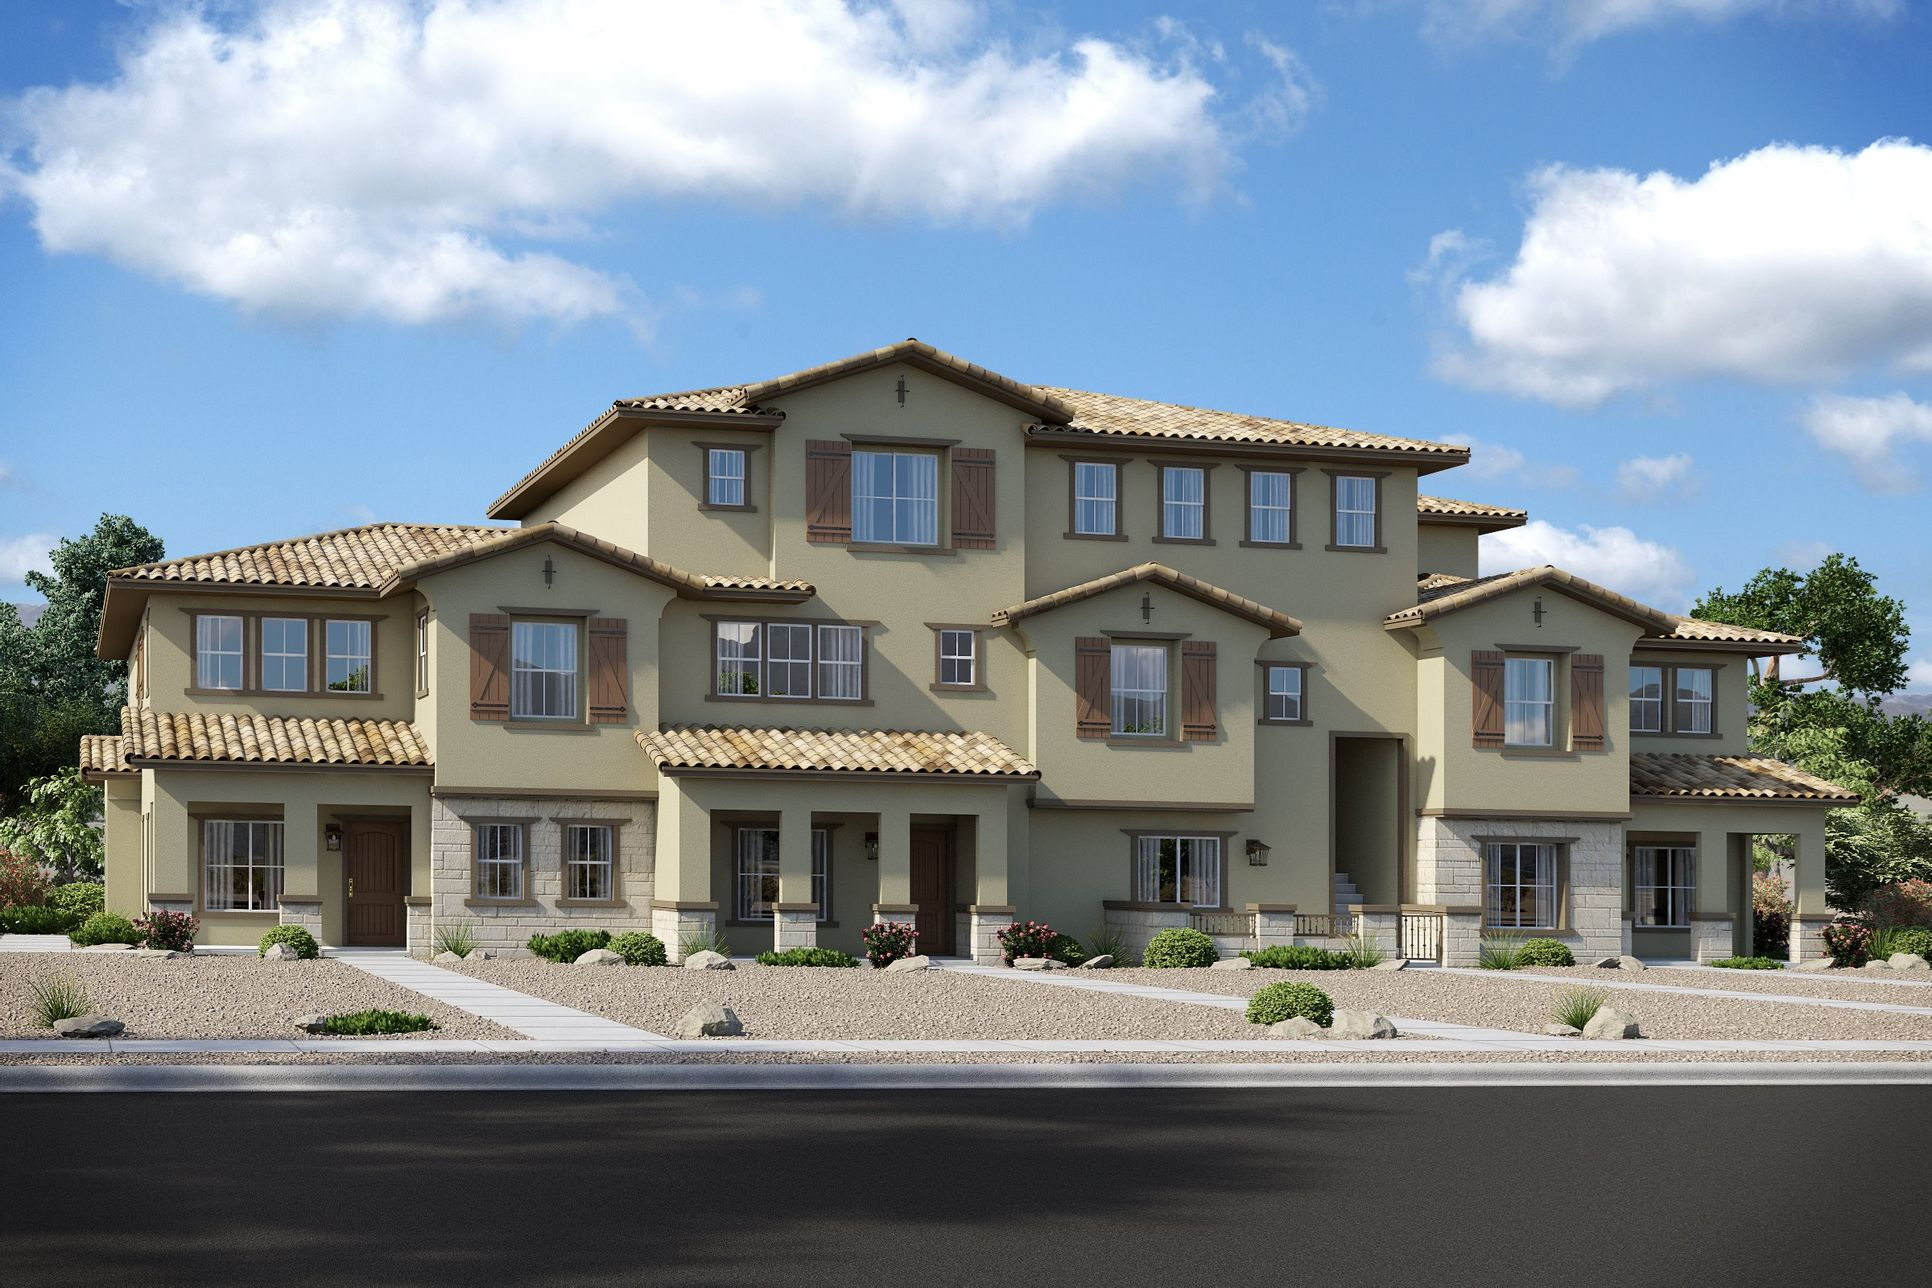 Summerlin - Santa Rosa Bellamar,89138